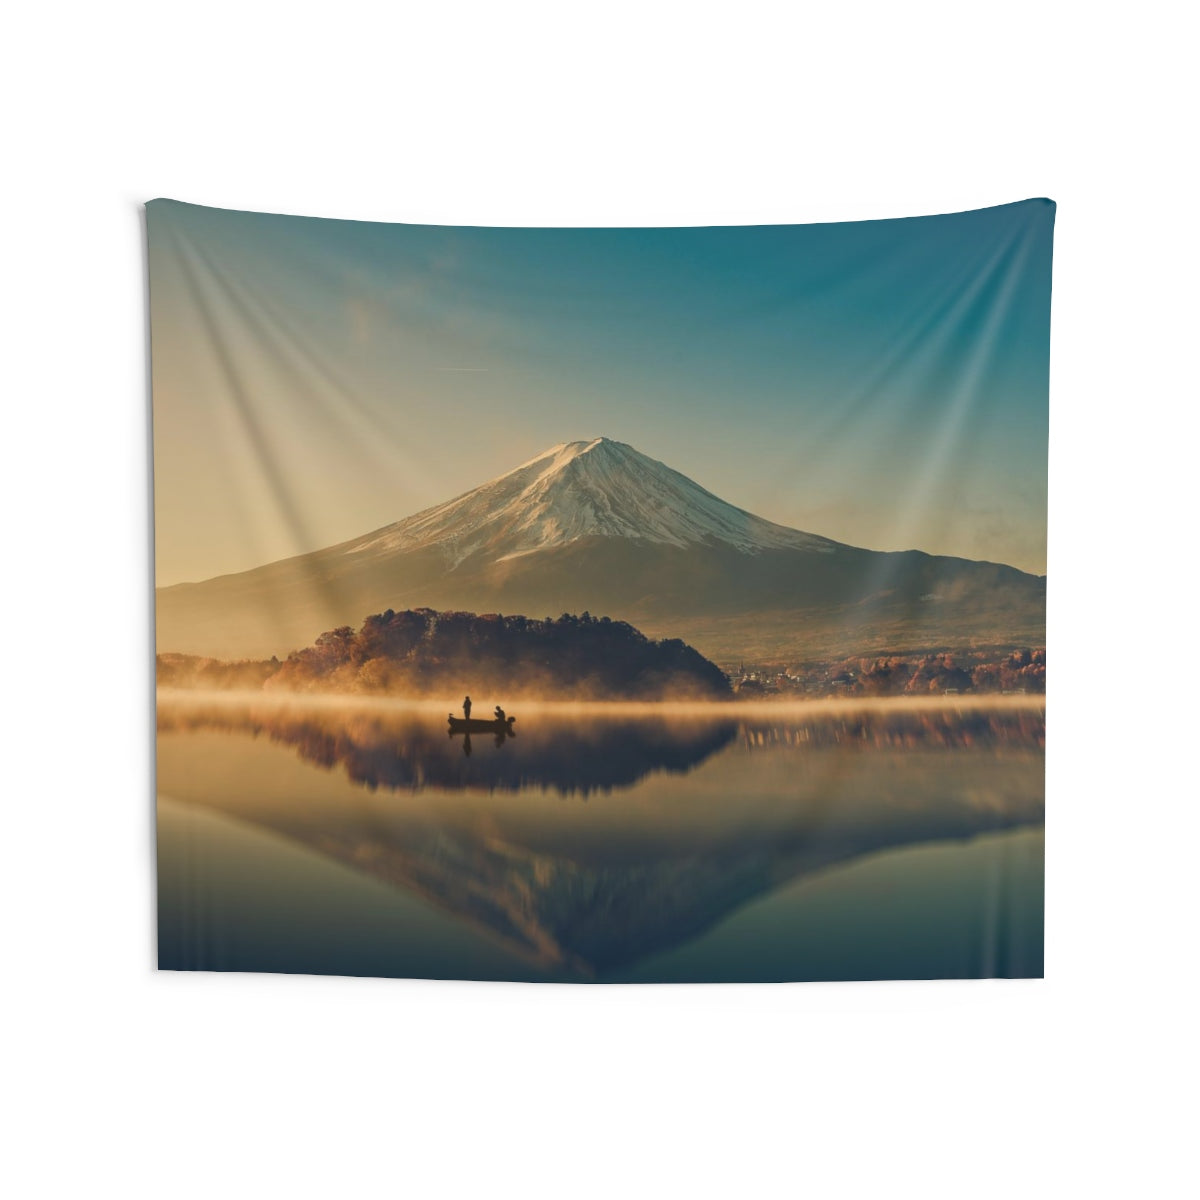 Mount Fuji Tapestry, Lake Kawaguchiko Mountain Snow Indoor Wall Art Hanging Tapestries Large Small Decor Home Dorm Room Gift - Starcove Design